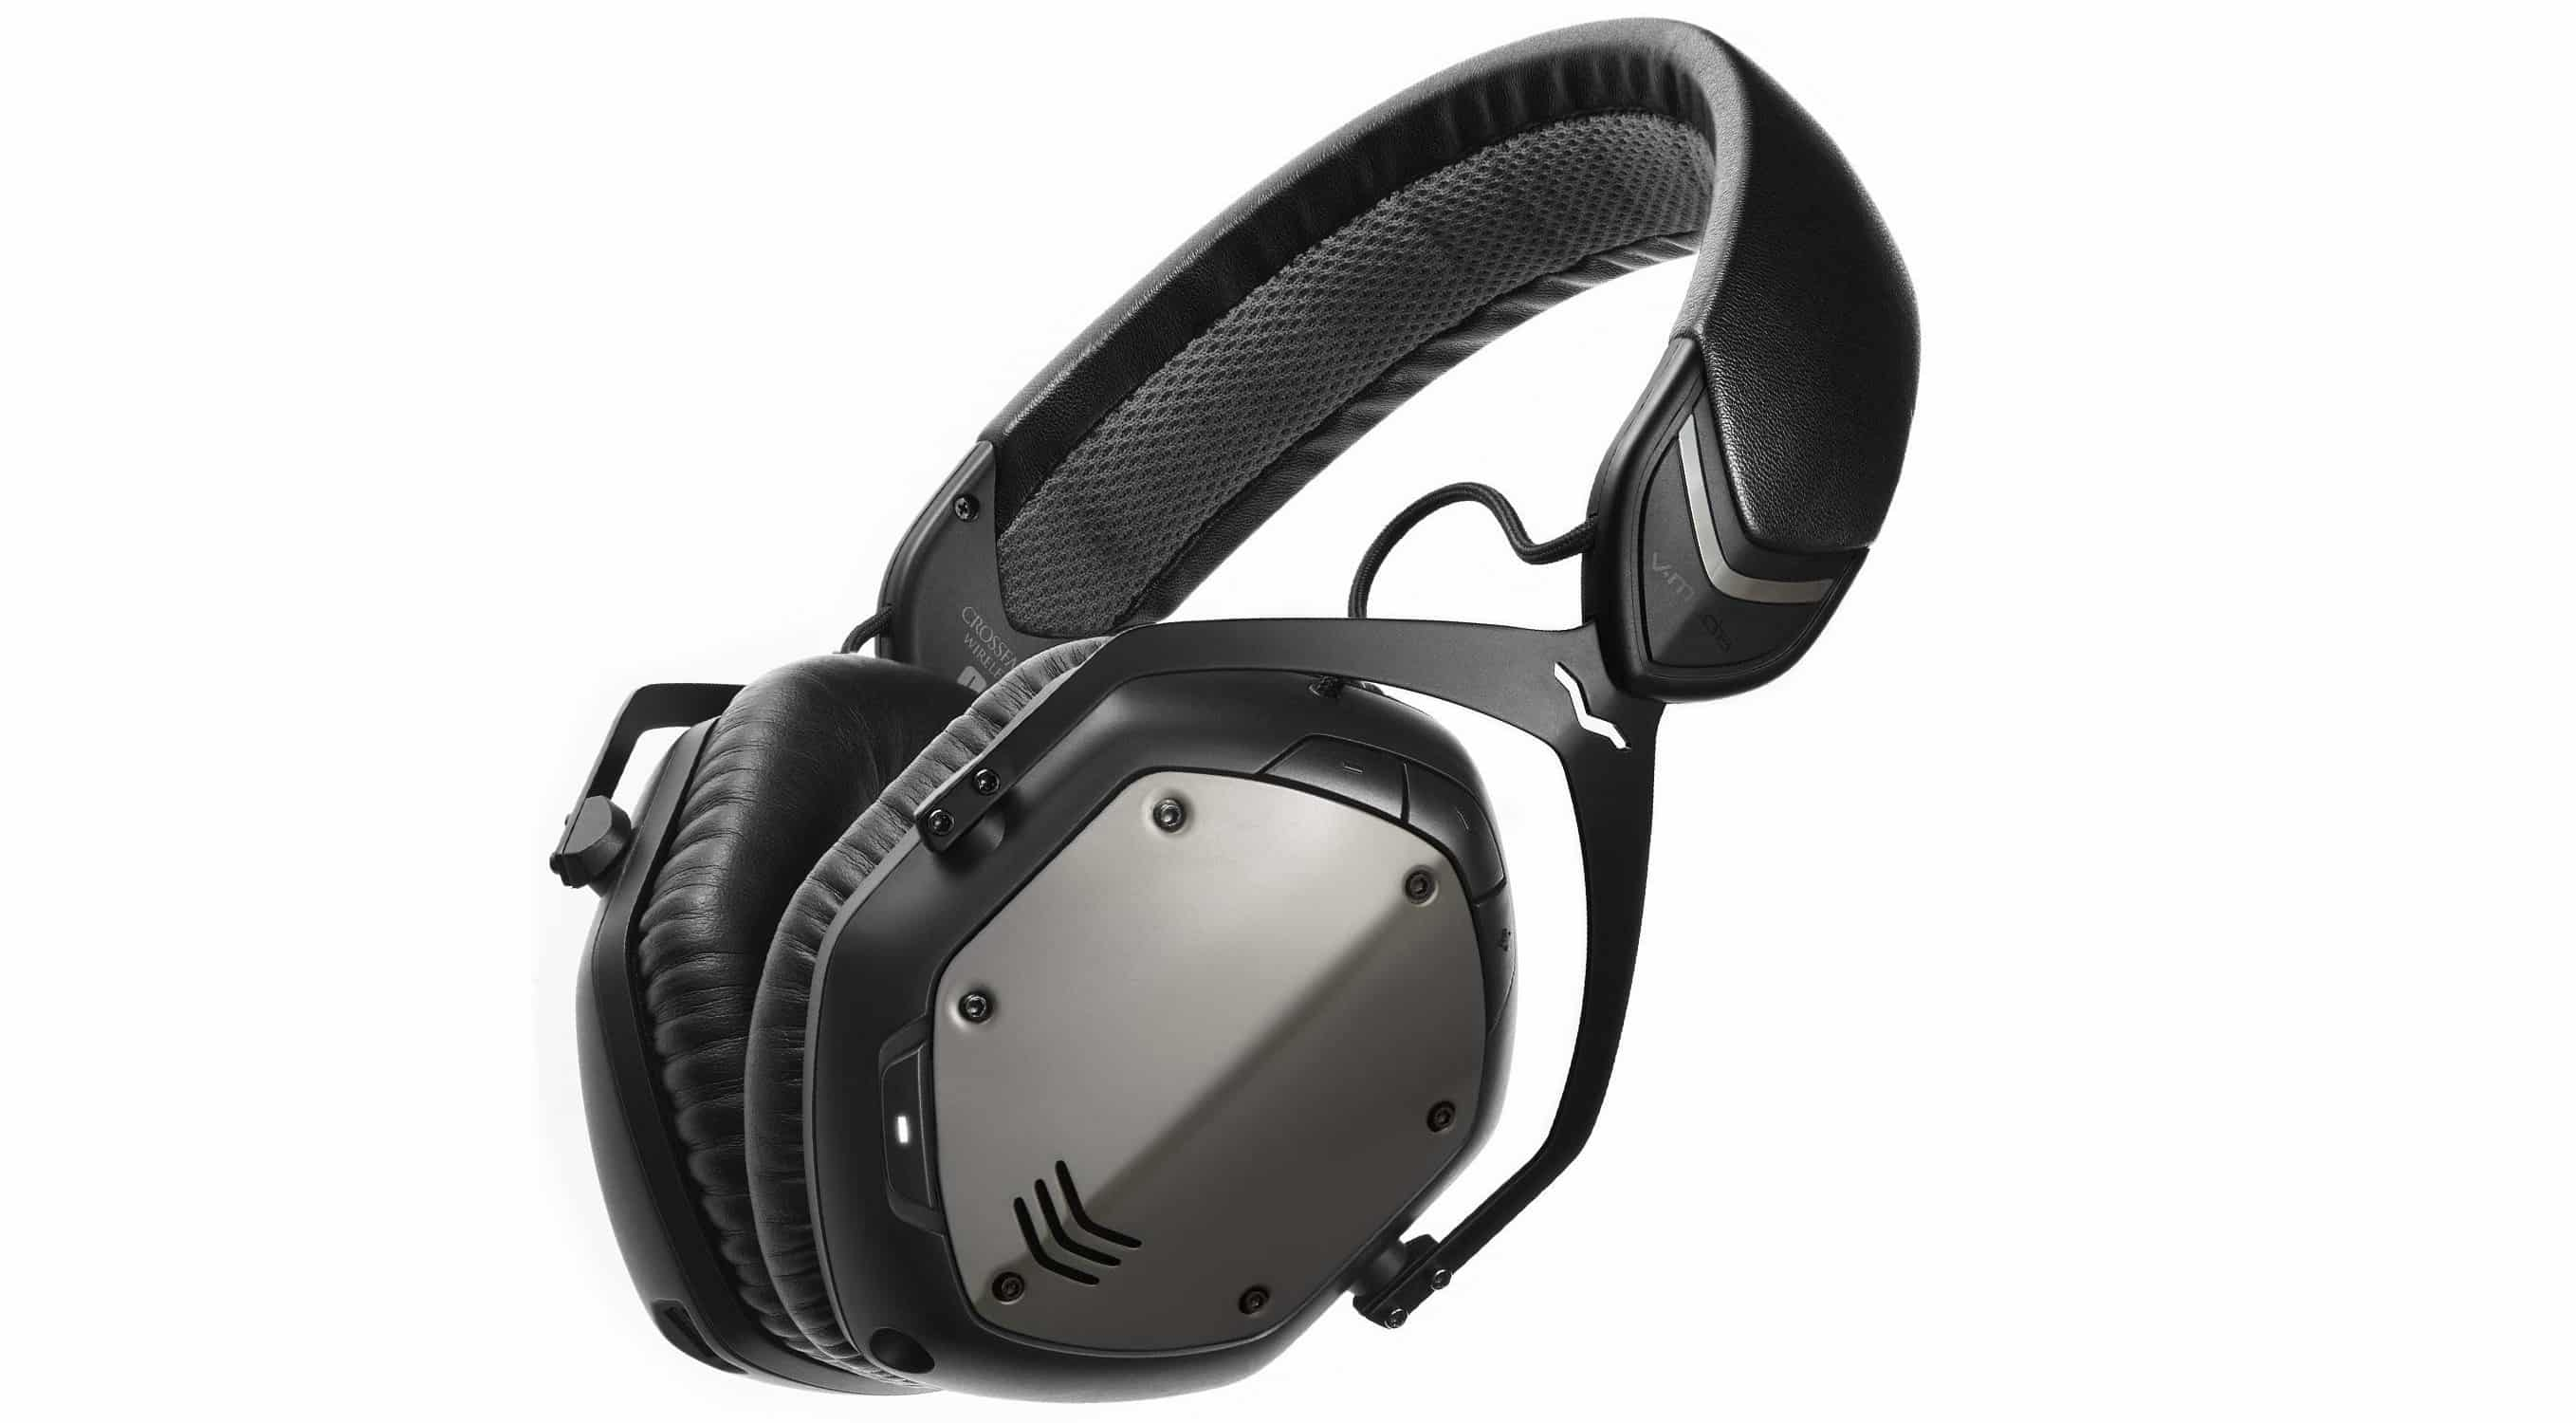 V-MODA Crossfade Wireless Over-Ear Headphone